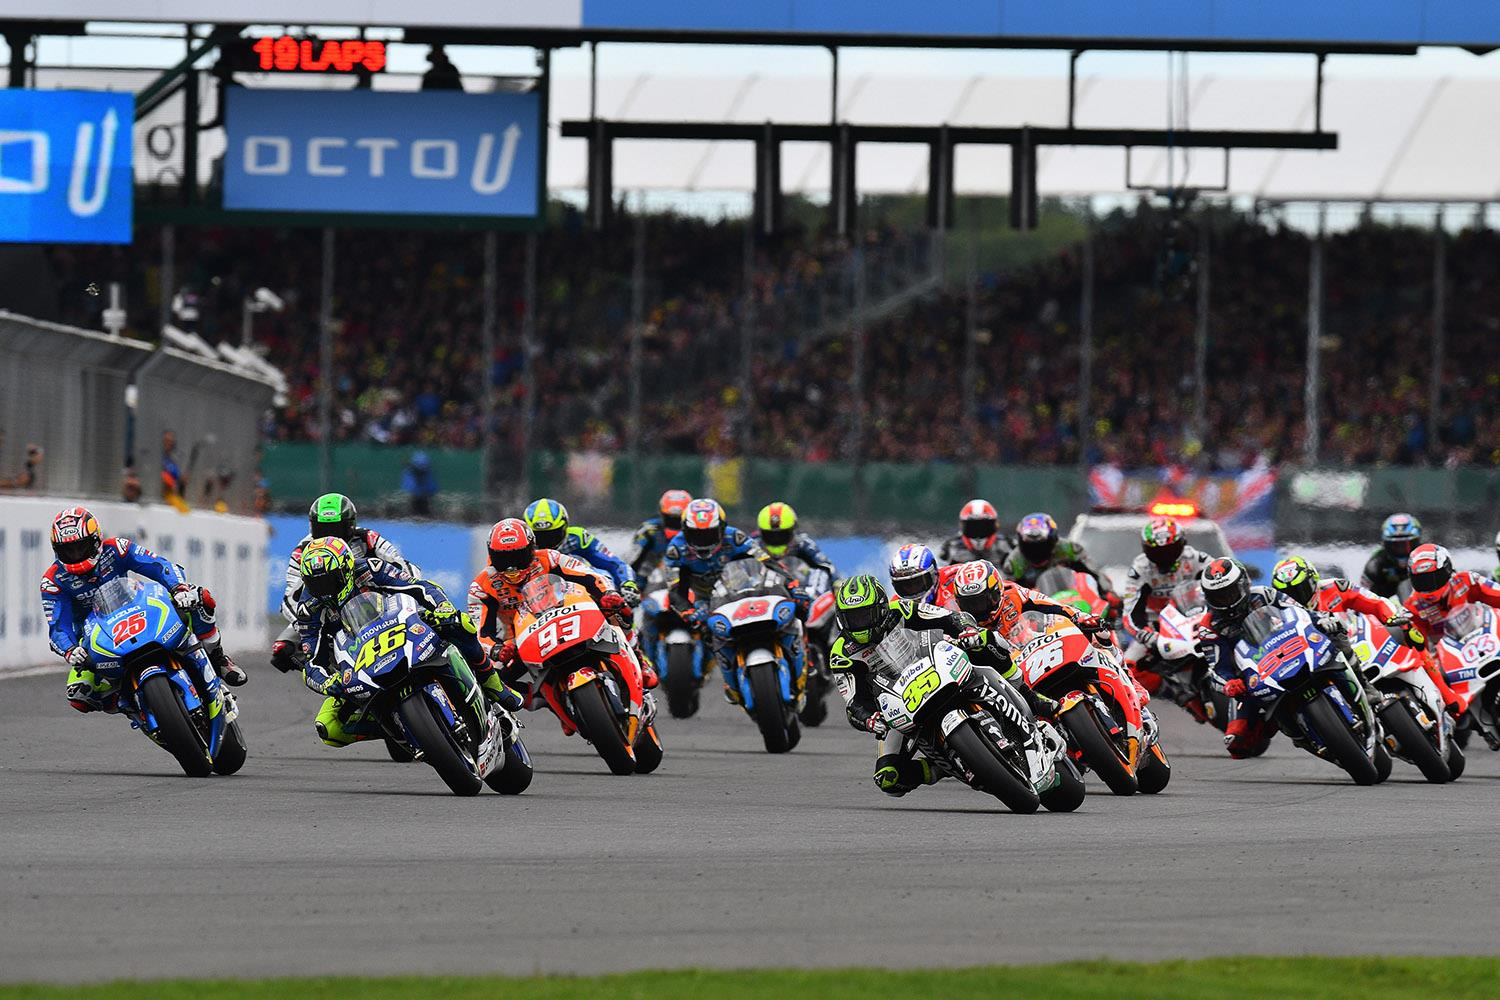 Motorcycling-Dovizioso takes MotoGP lead with British GP win